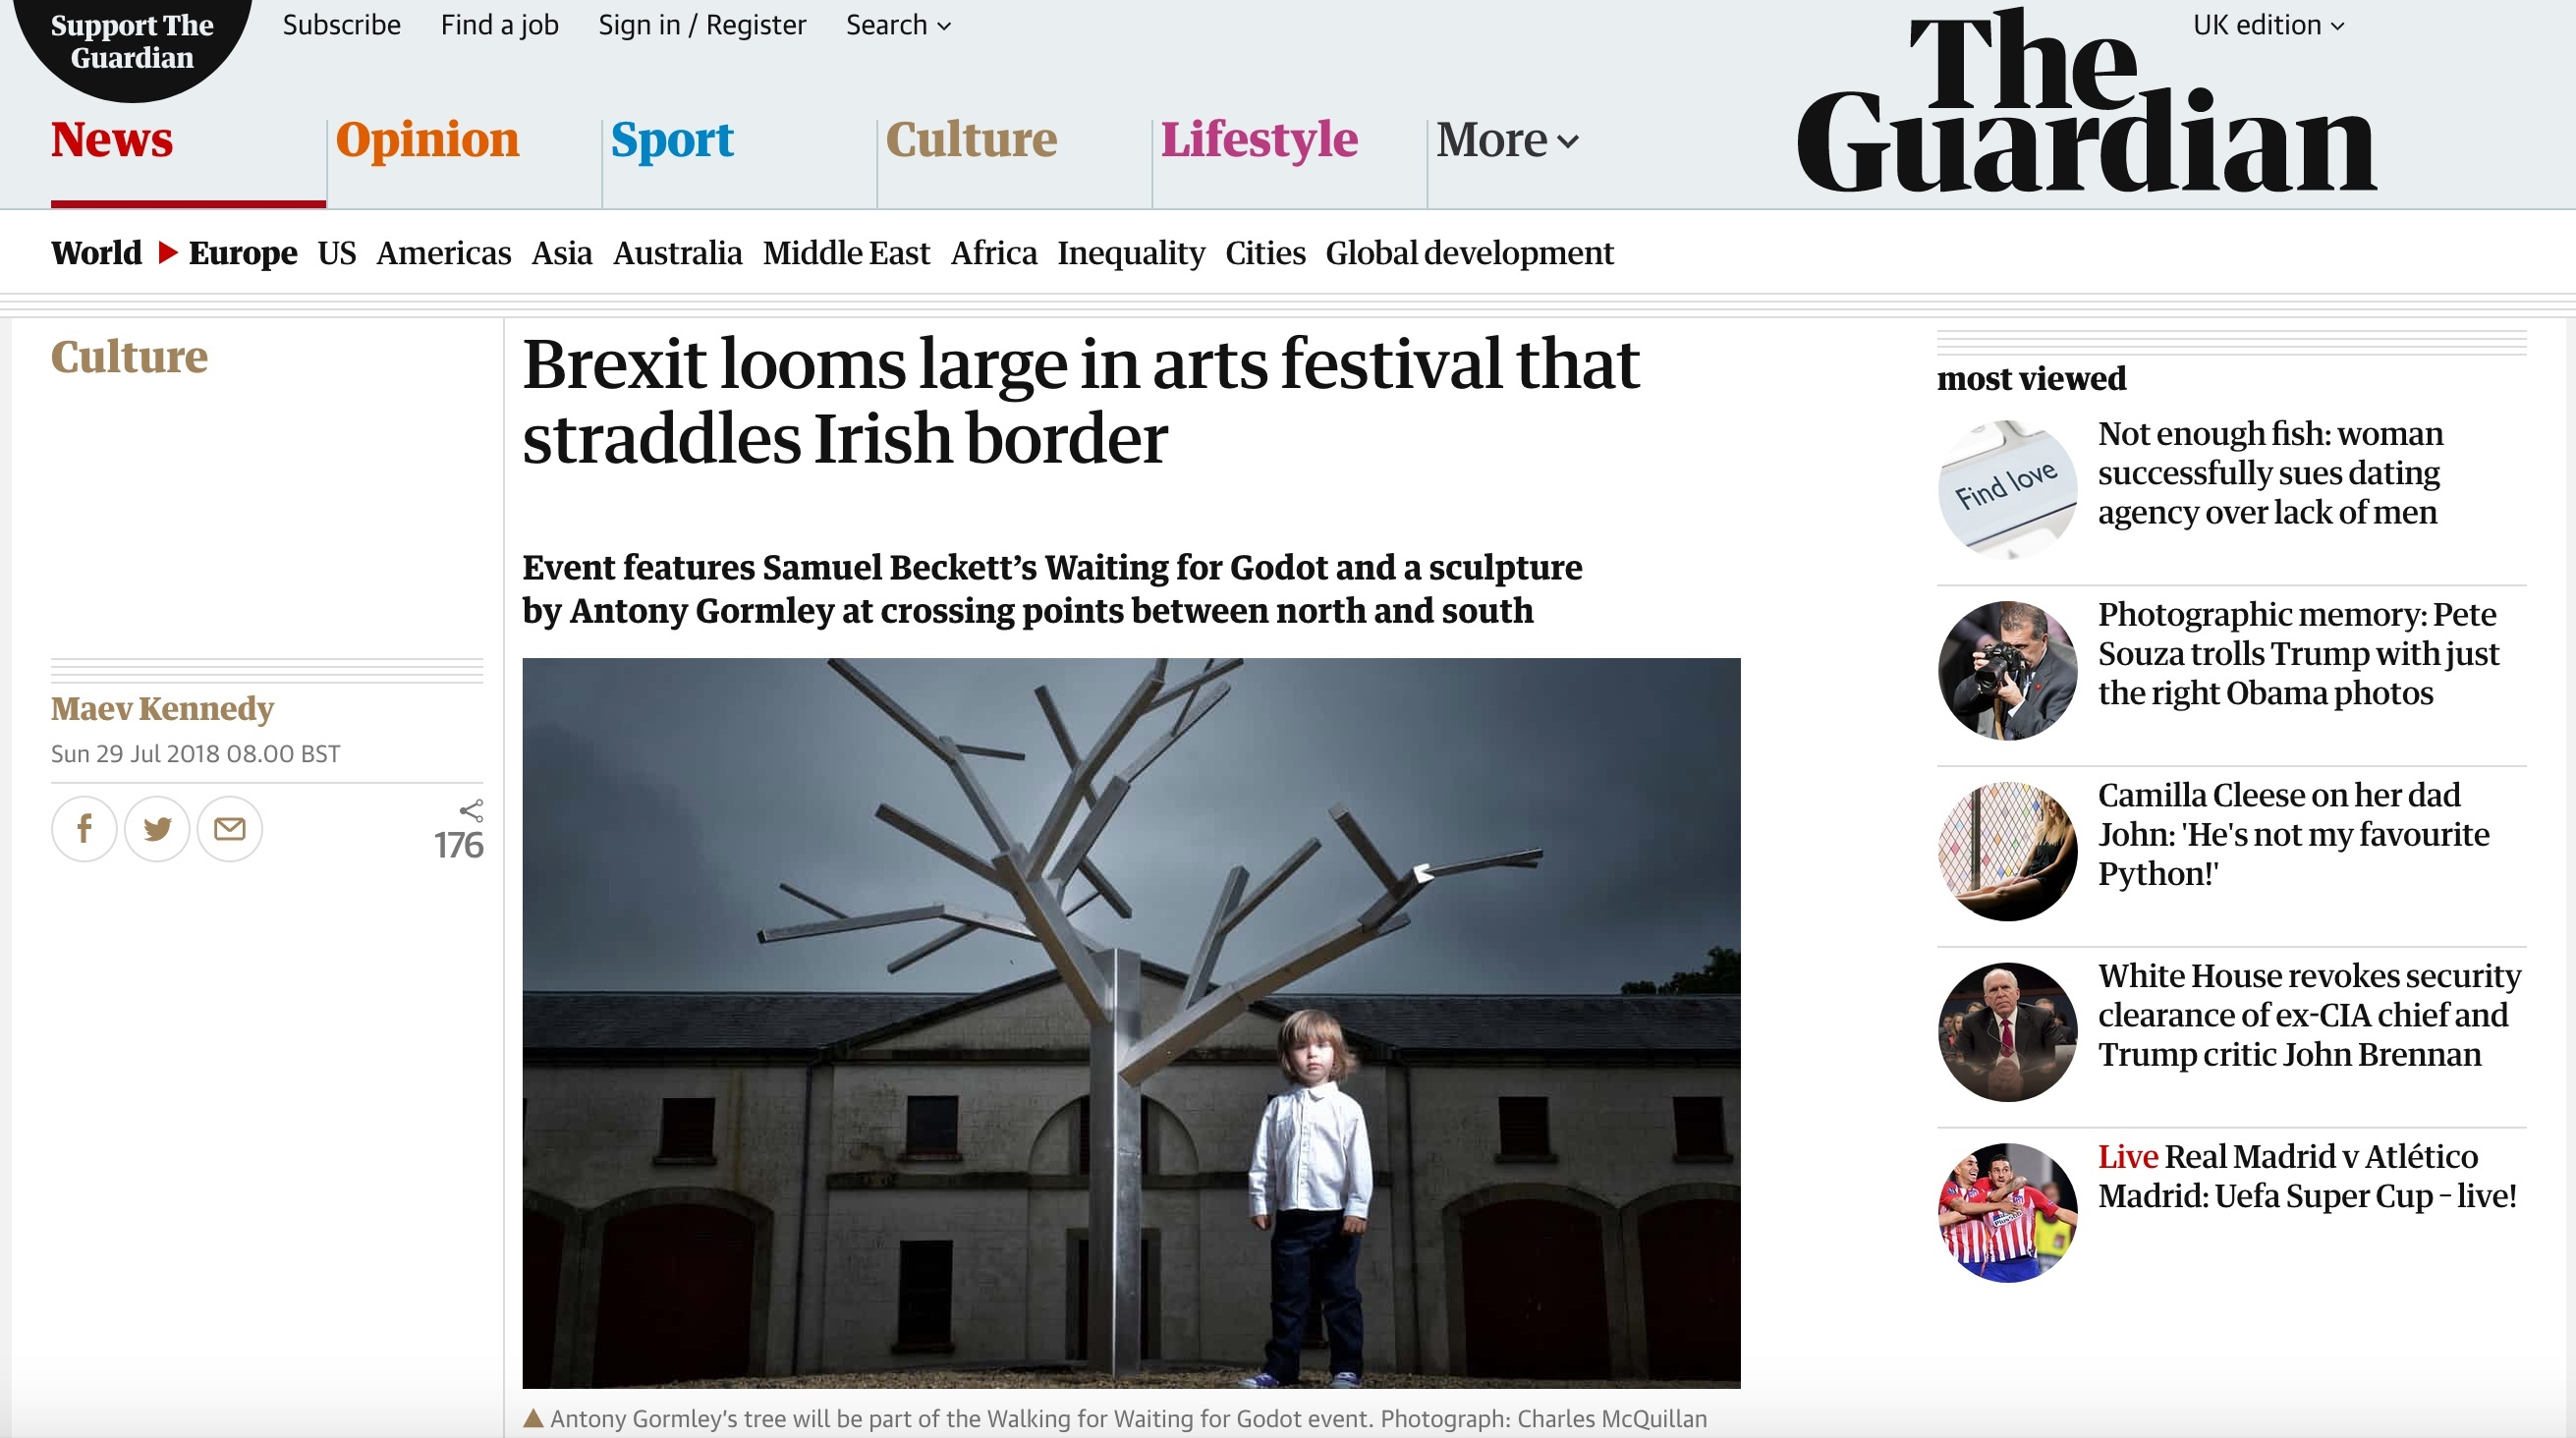 The Guardian: Brexit looms large in arts festival that straddles Irish border